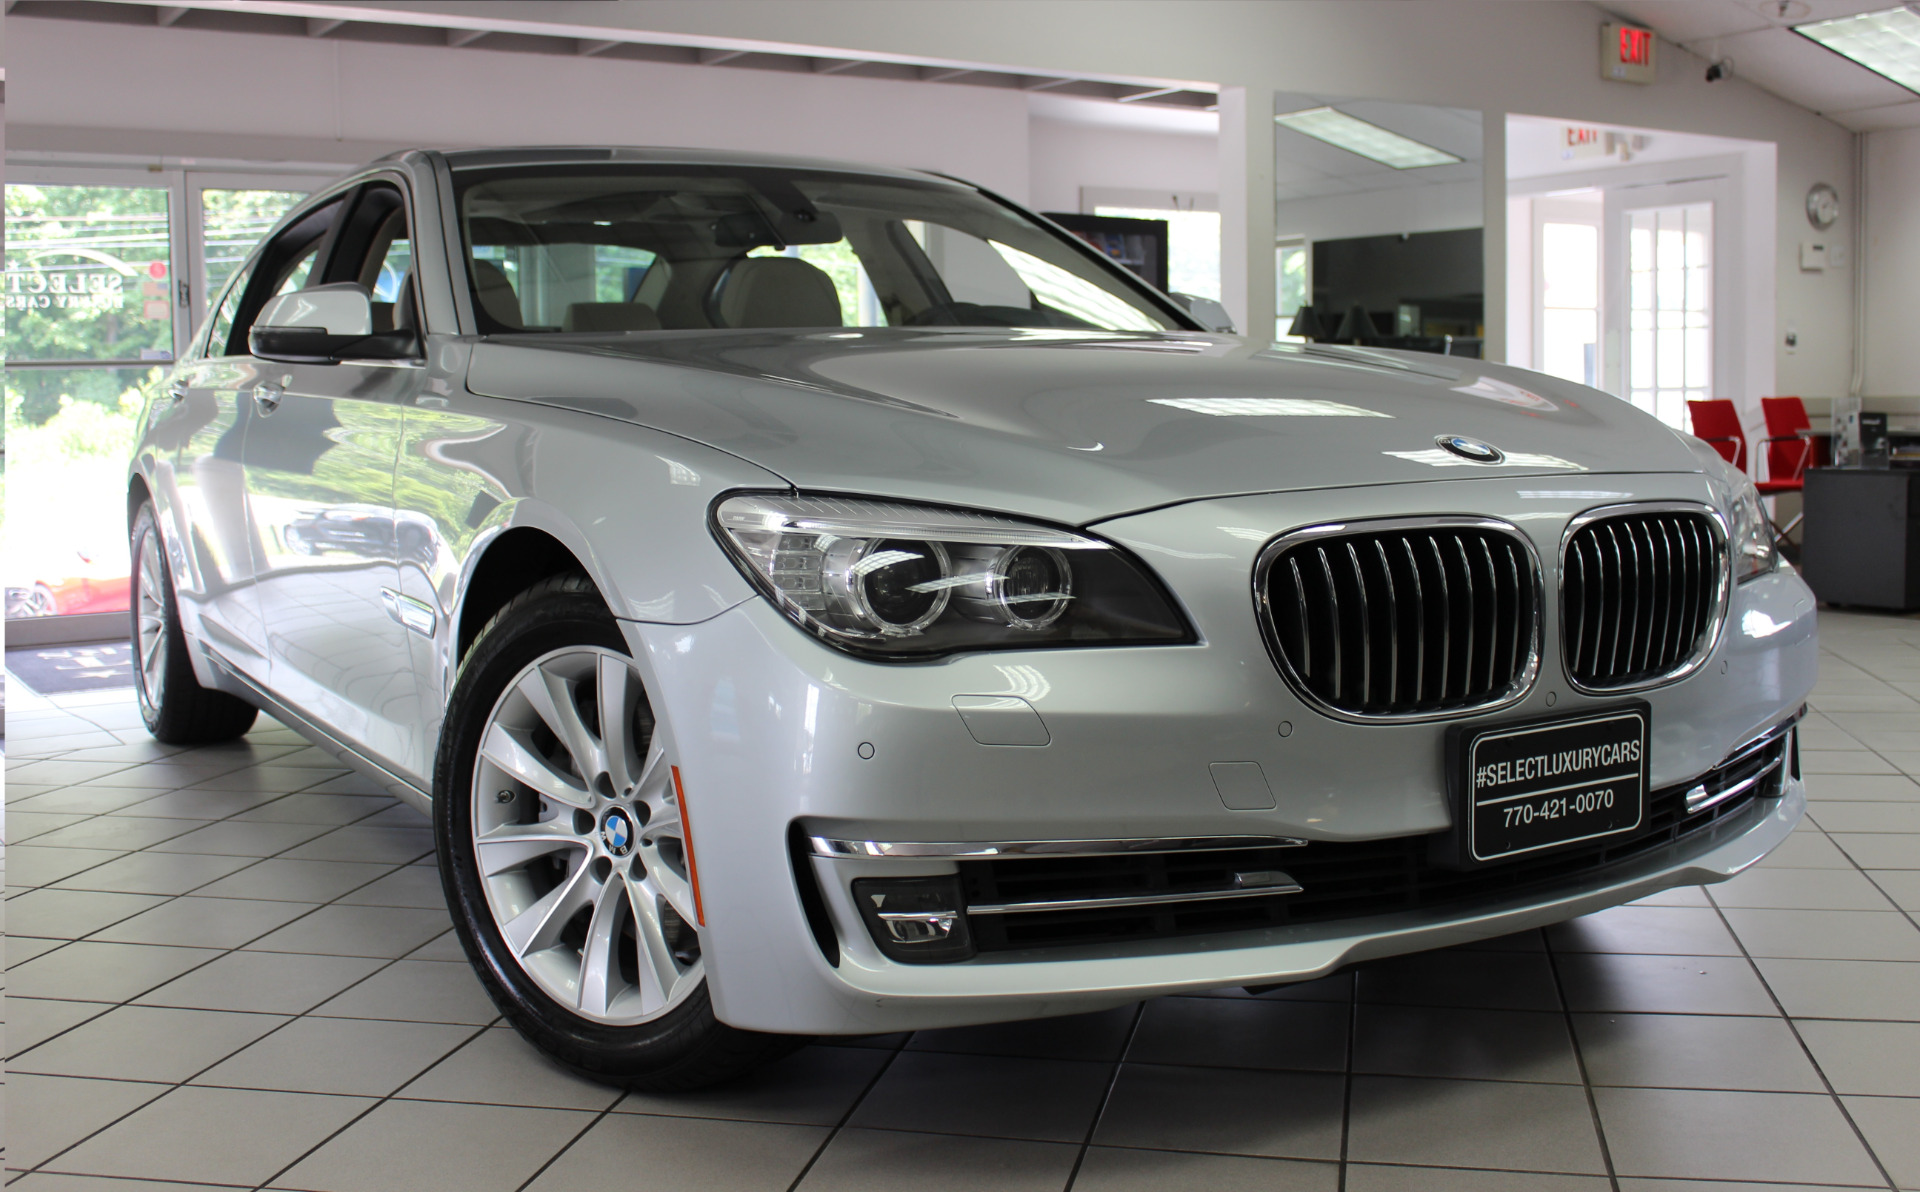 BMW 7 series 740Li 2013 photo - 1